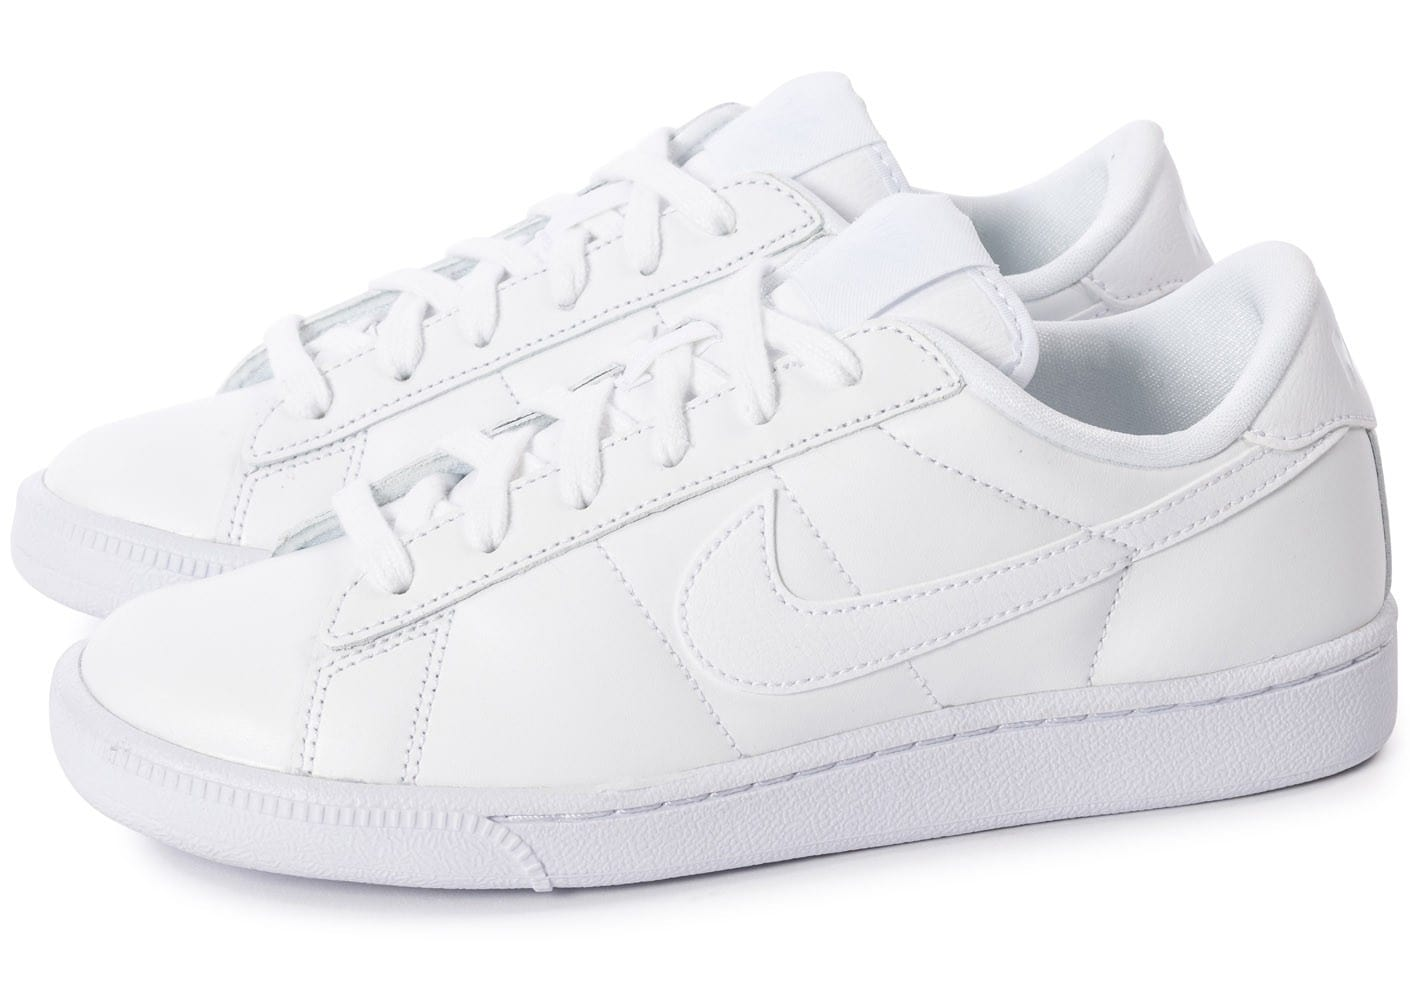 nike tennis classic blanche chaussures chaussures. Black Bedroom Furniture Sets. Home Design Ideas